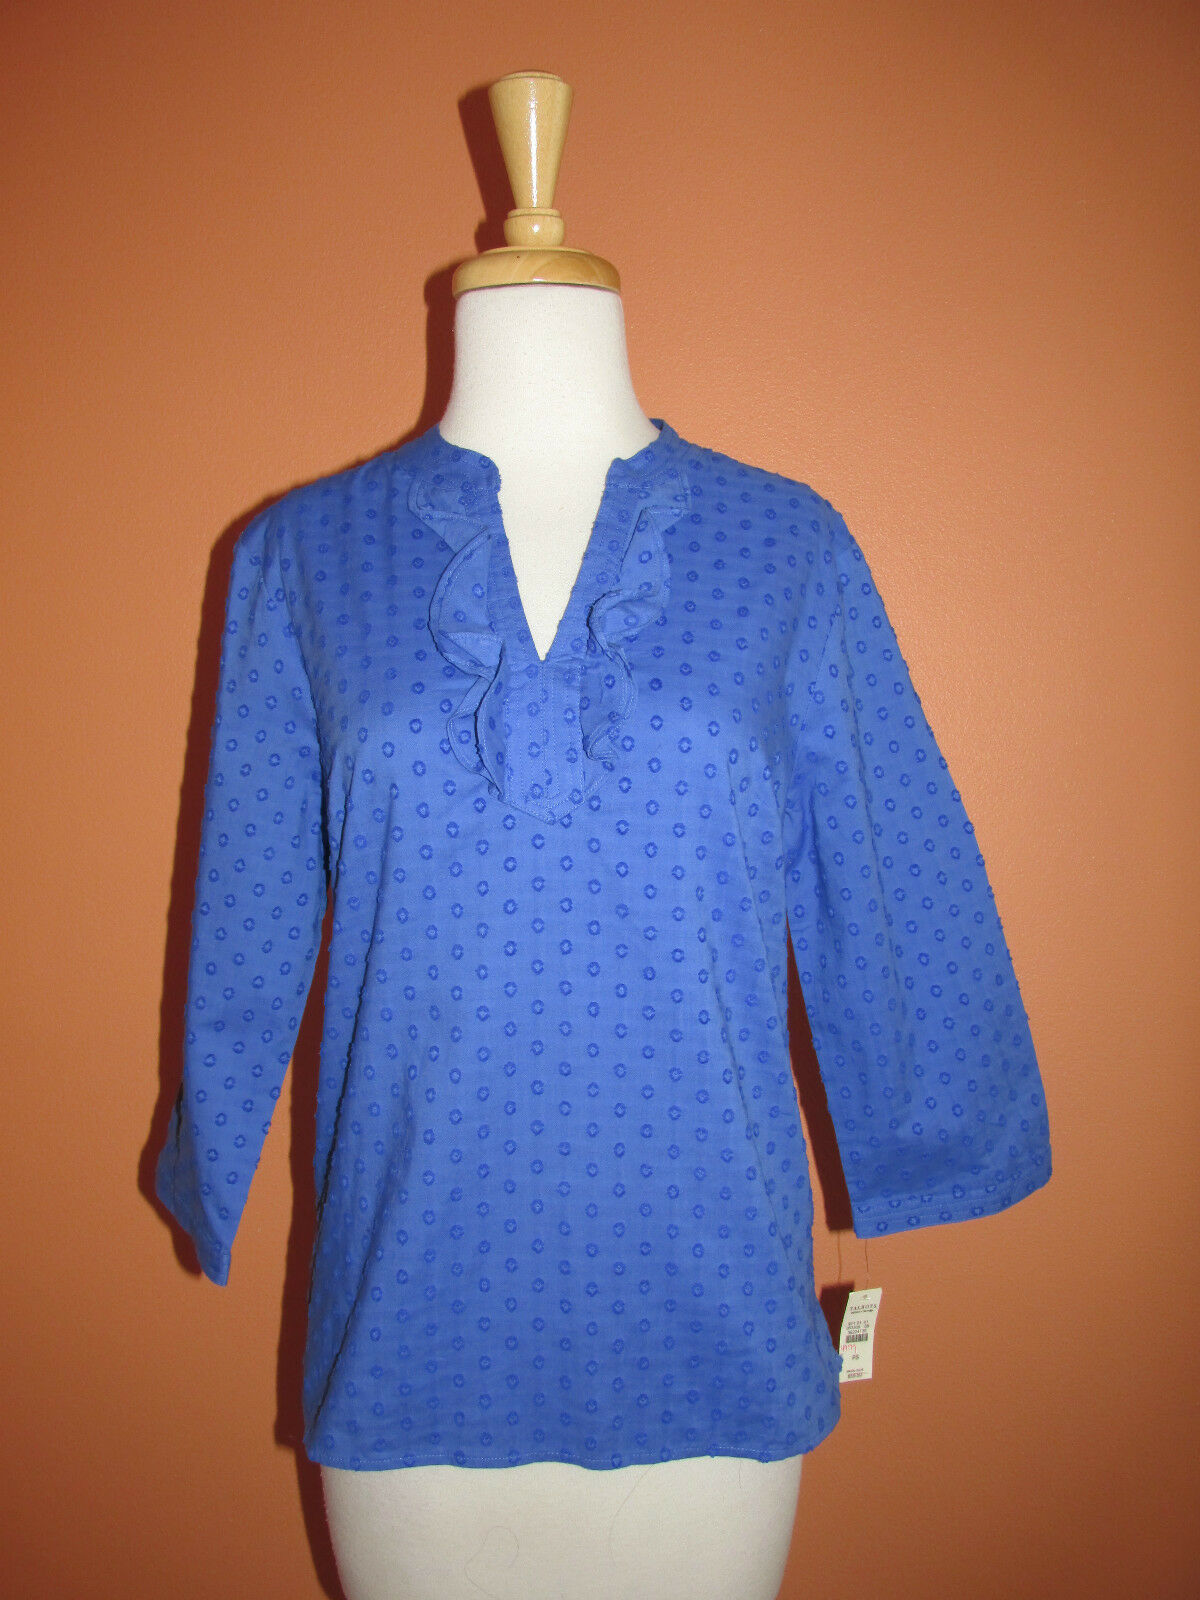 New Talbots Outlet Size SP bluee Ruffle Trim 3 4 Sleeve Cotton Tunic Top